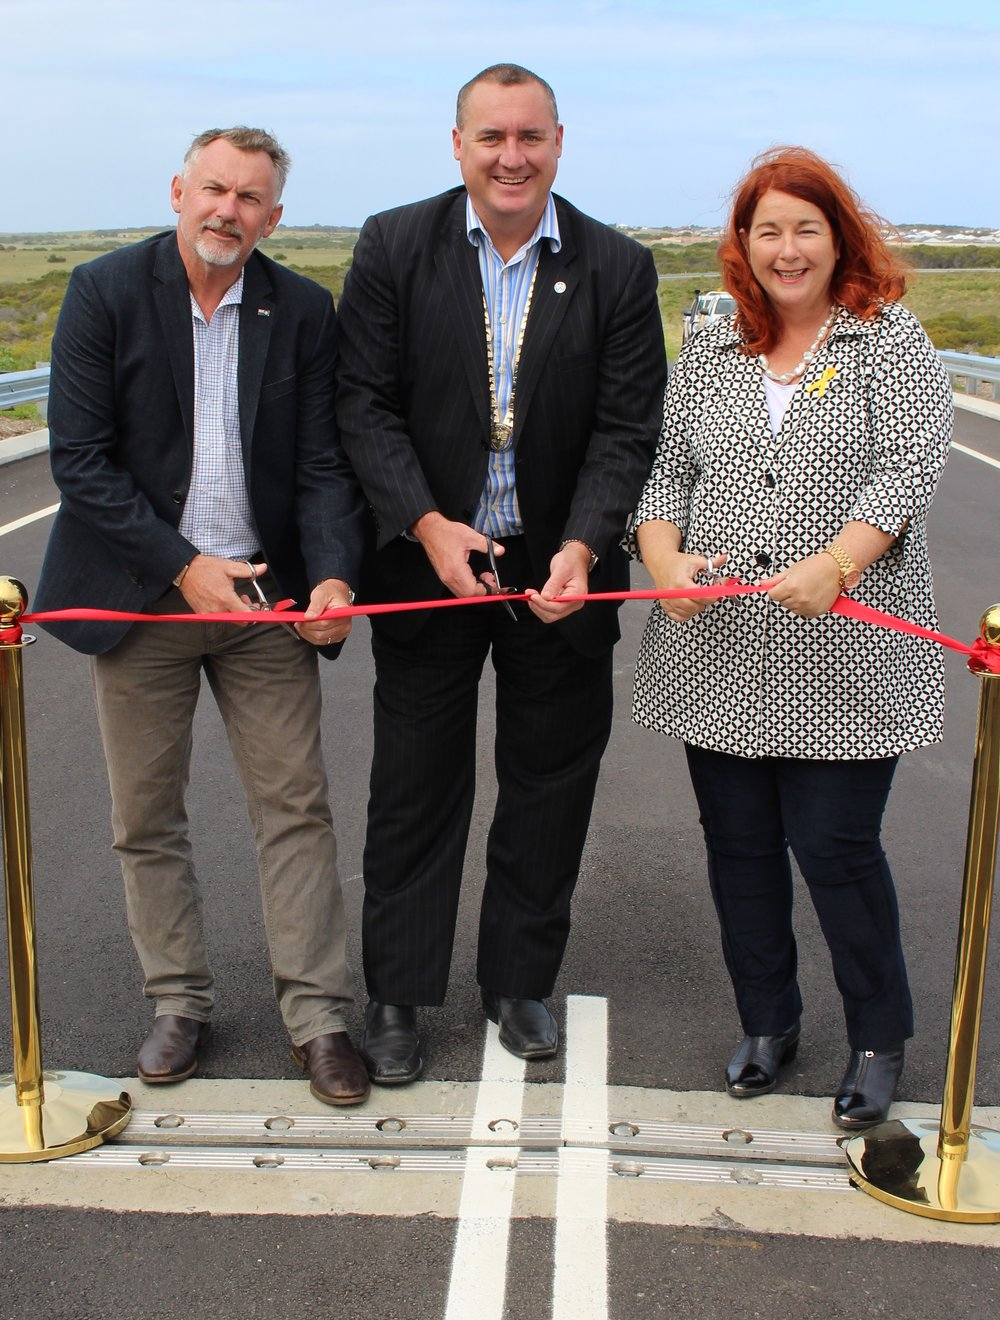 Member for Agriculture the Hon. Paul Brown MLC, City of Greater Geraldton Mayor Shane Van Styn and Federal Member for Durack Melissa Price MP cut the ribbon - officially opening the Abraham Street bridge.